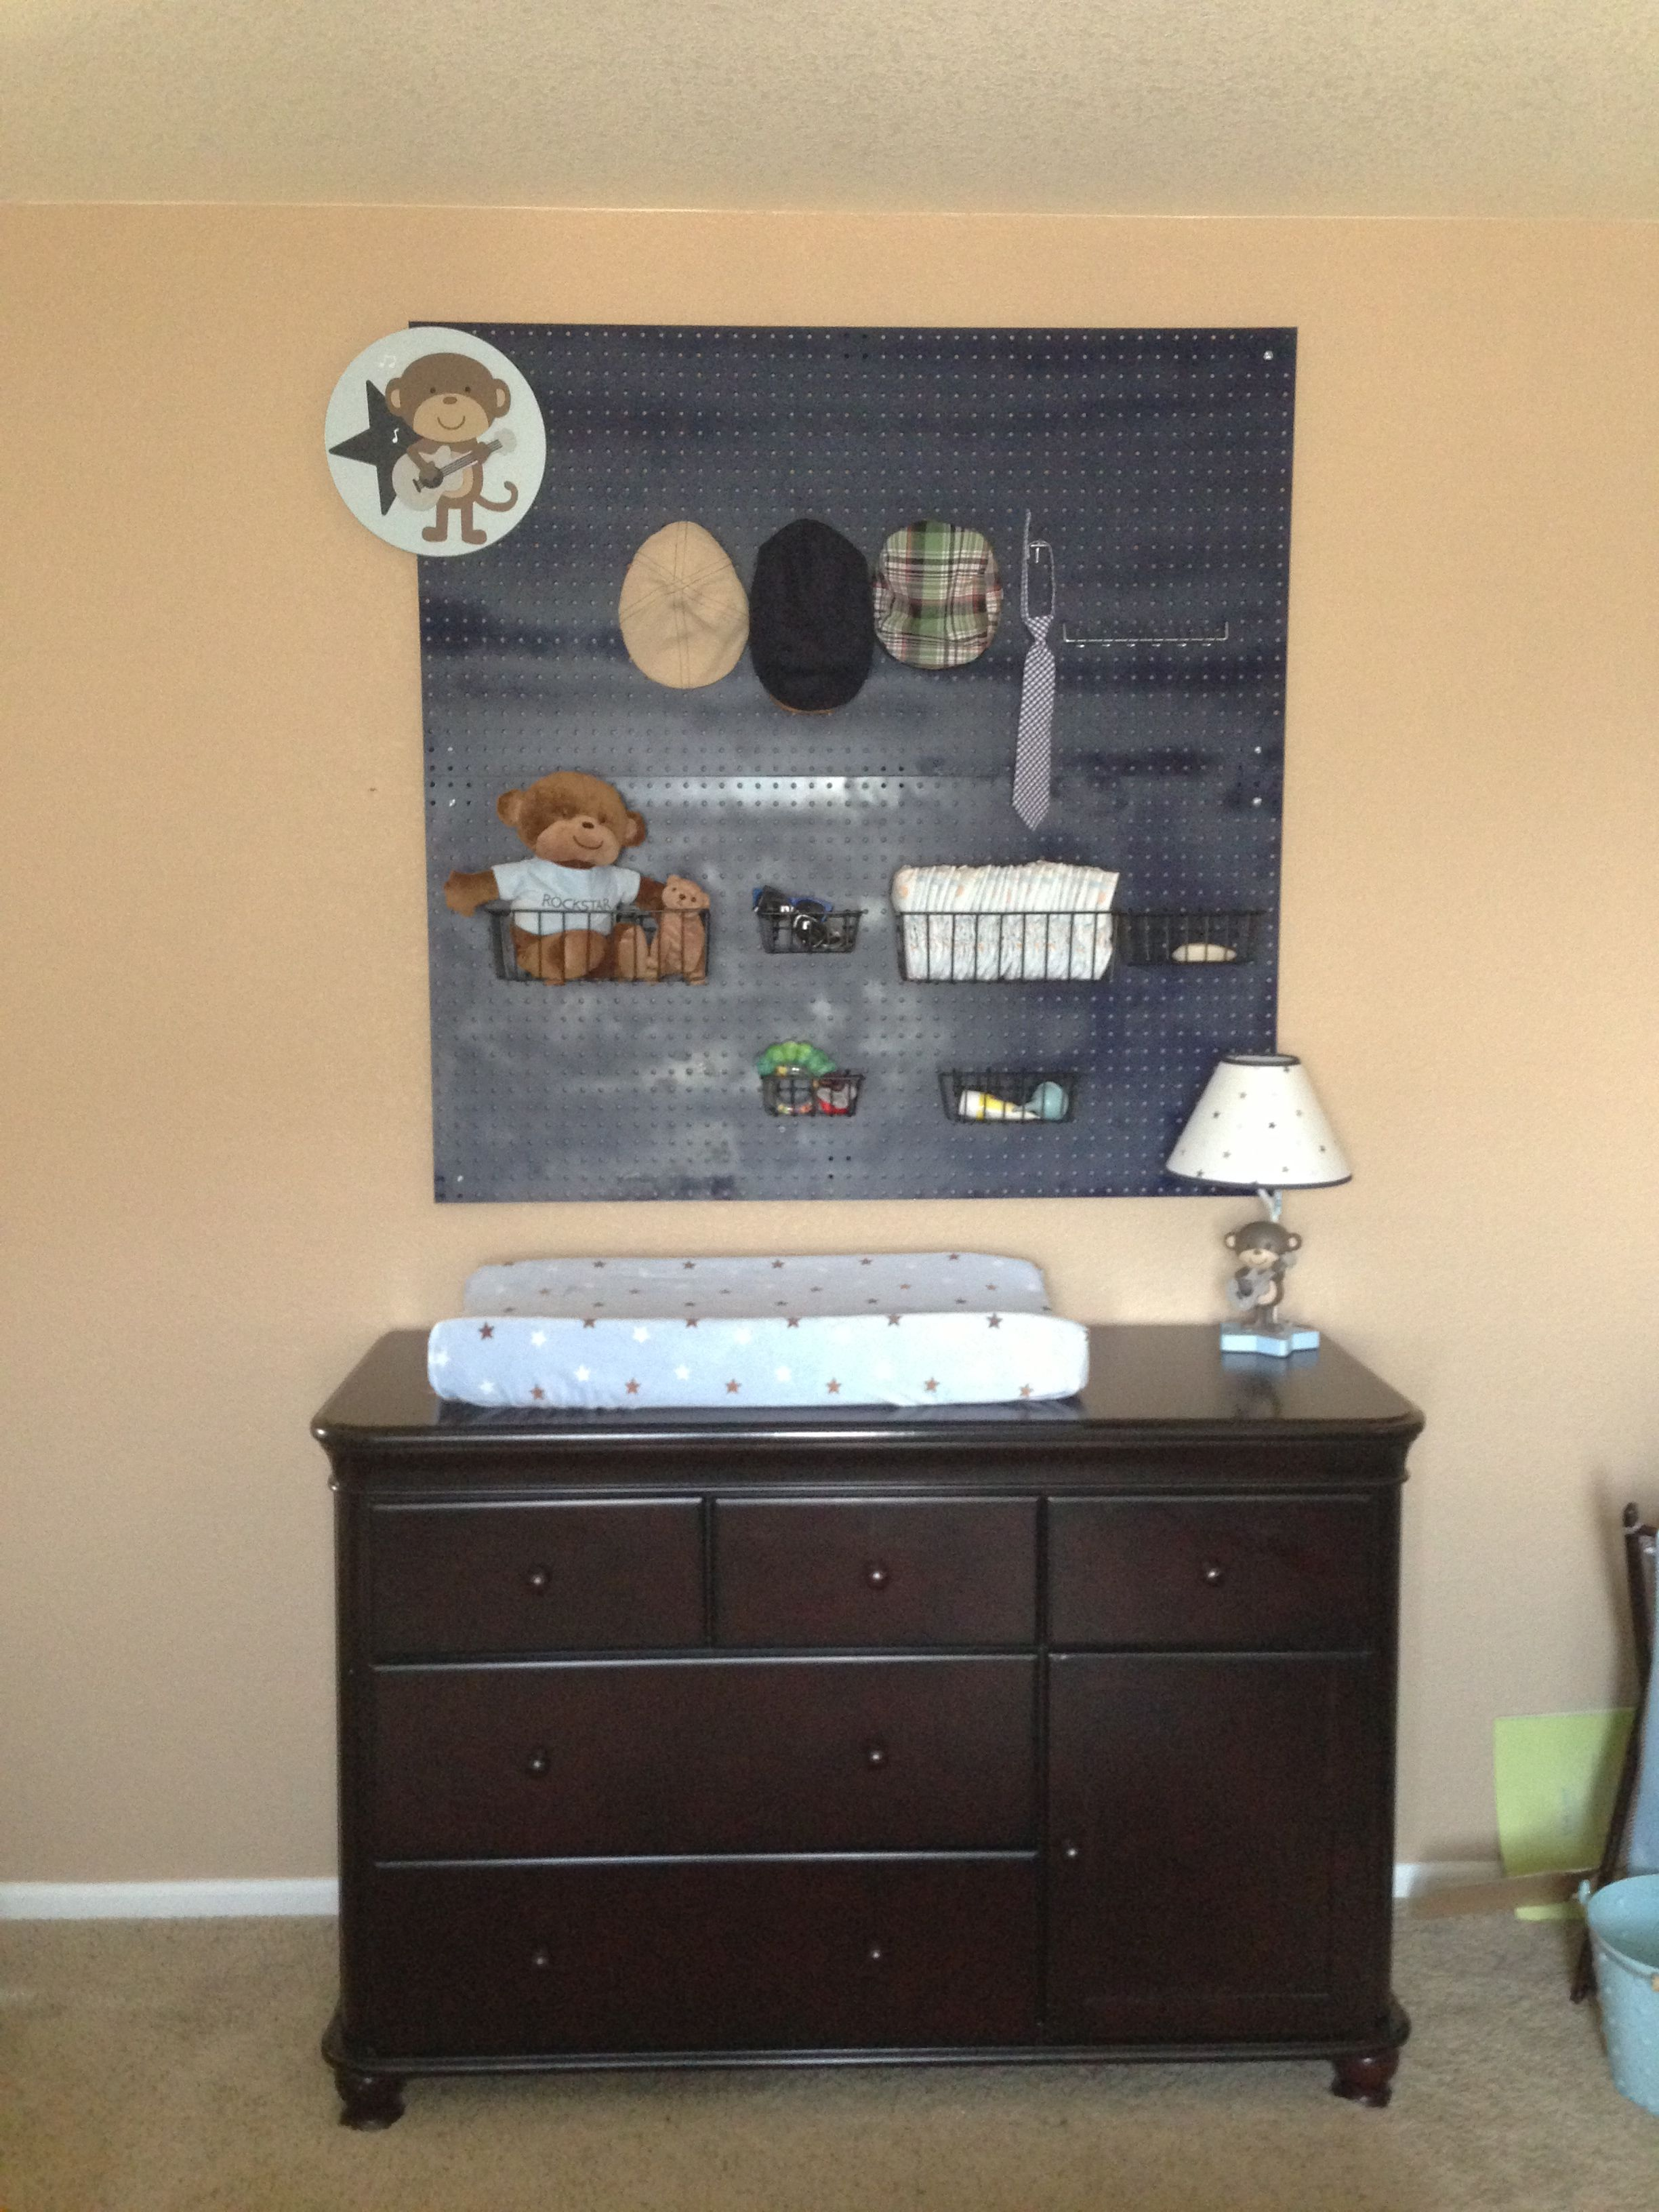 Pegboard in baby boys room! Just needs a few more items for a complete changing station